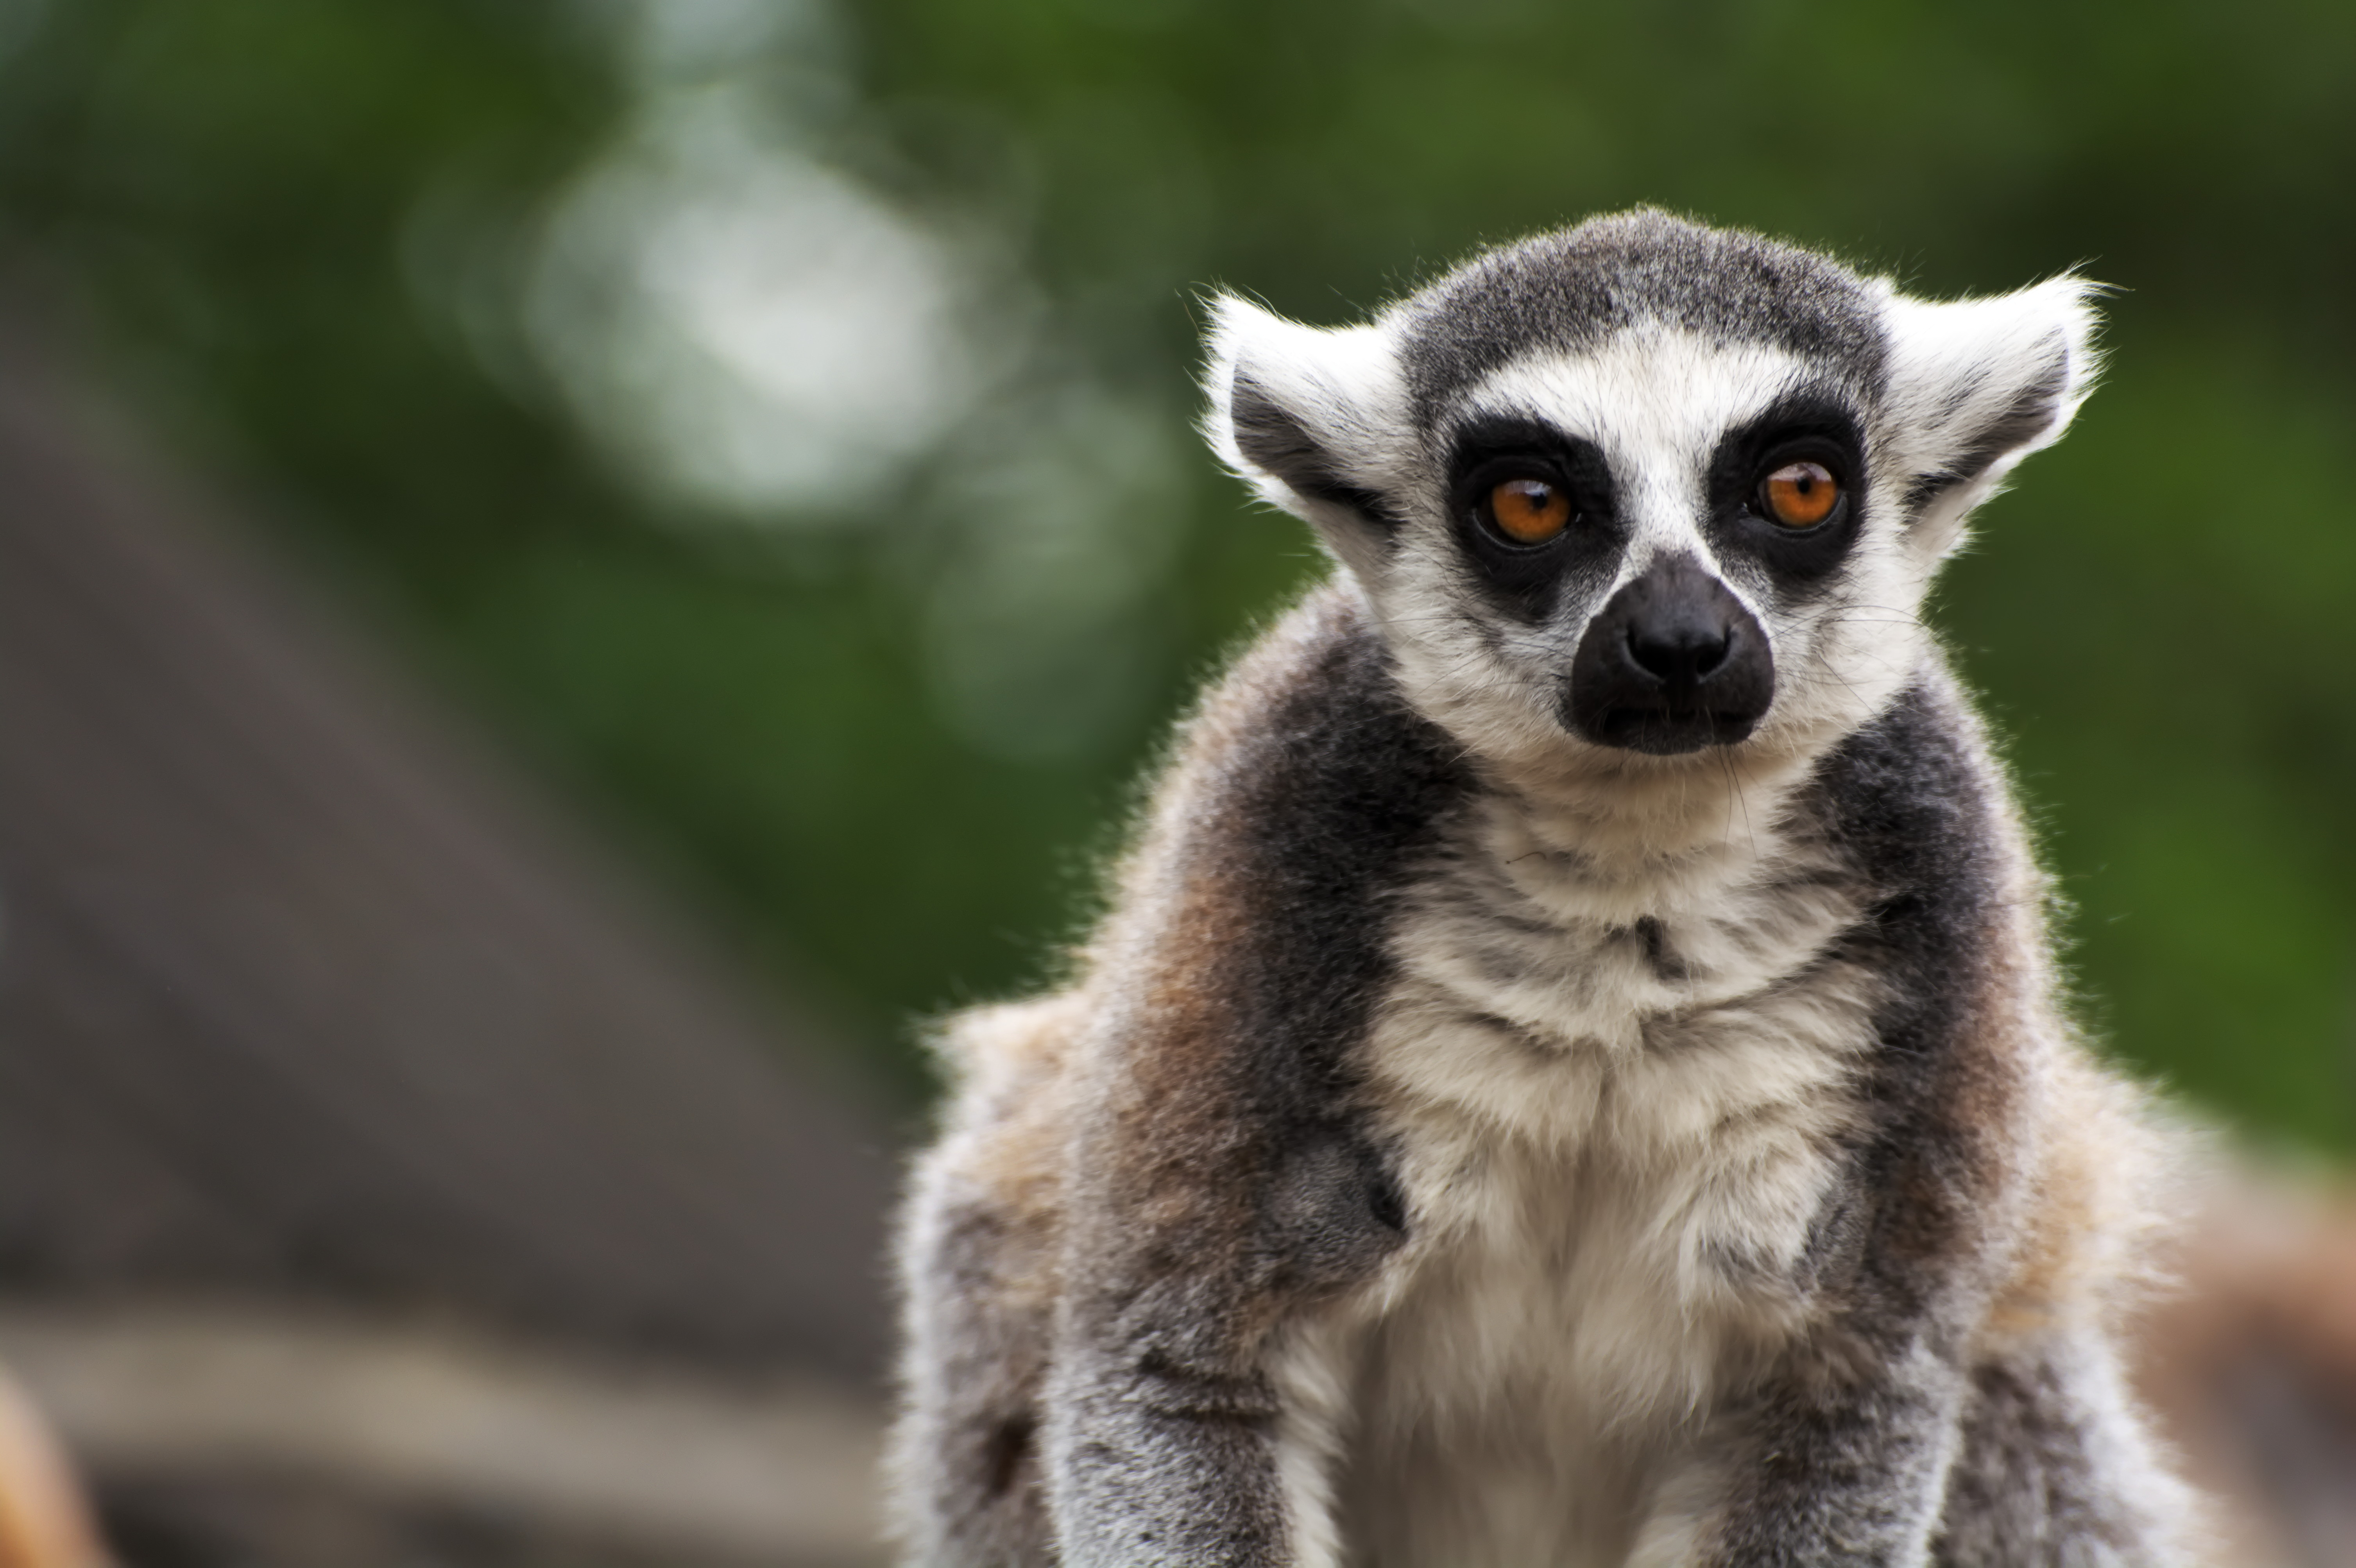 73386 download wallpaper Animals, Lemur, Animal, Sight, Opinion, Funny, Focus screensavers and pictures for free